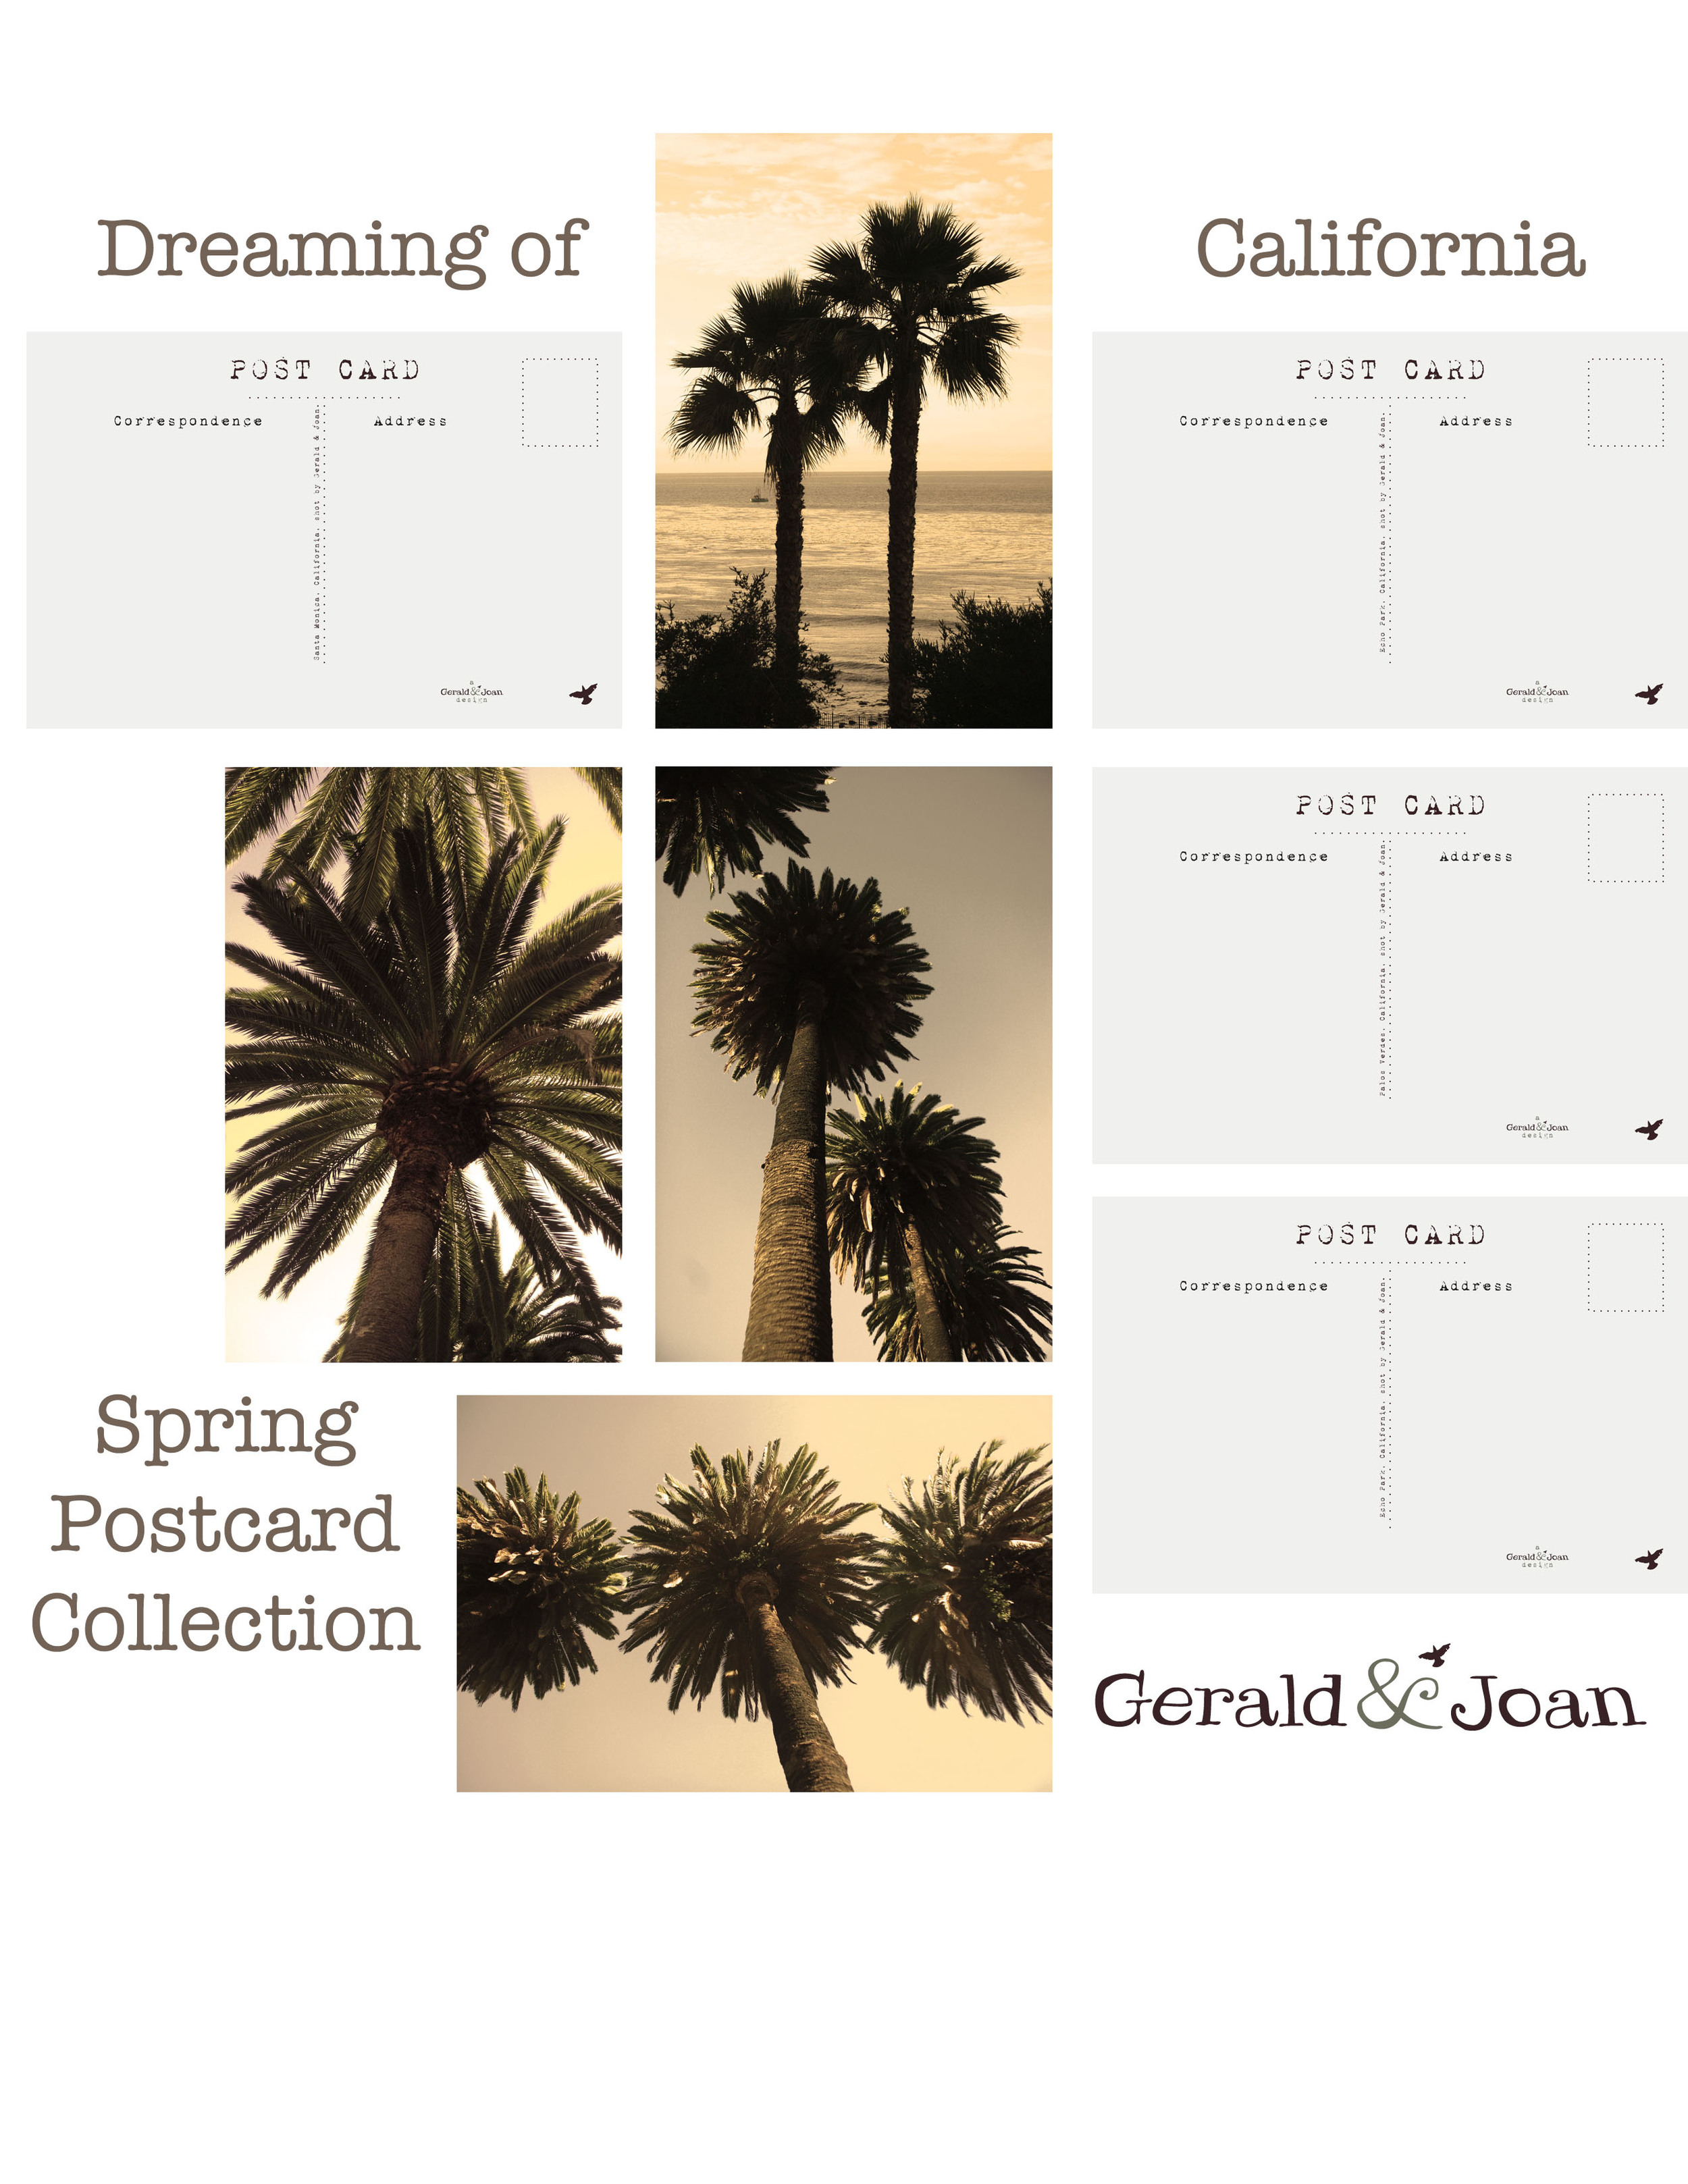 Springpalmpostcards